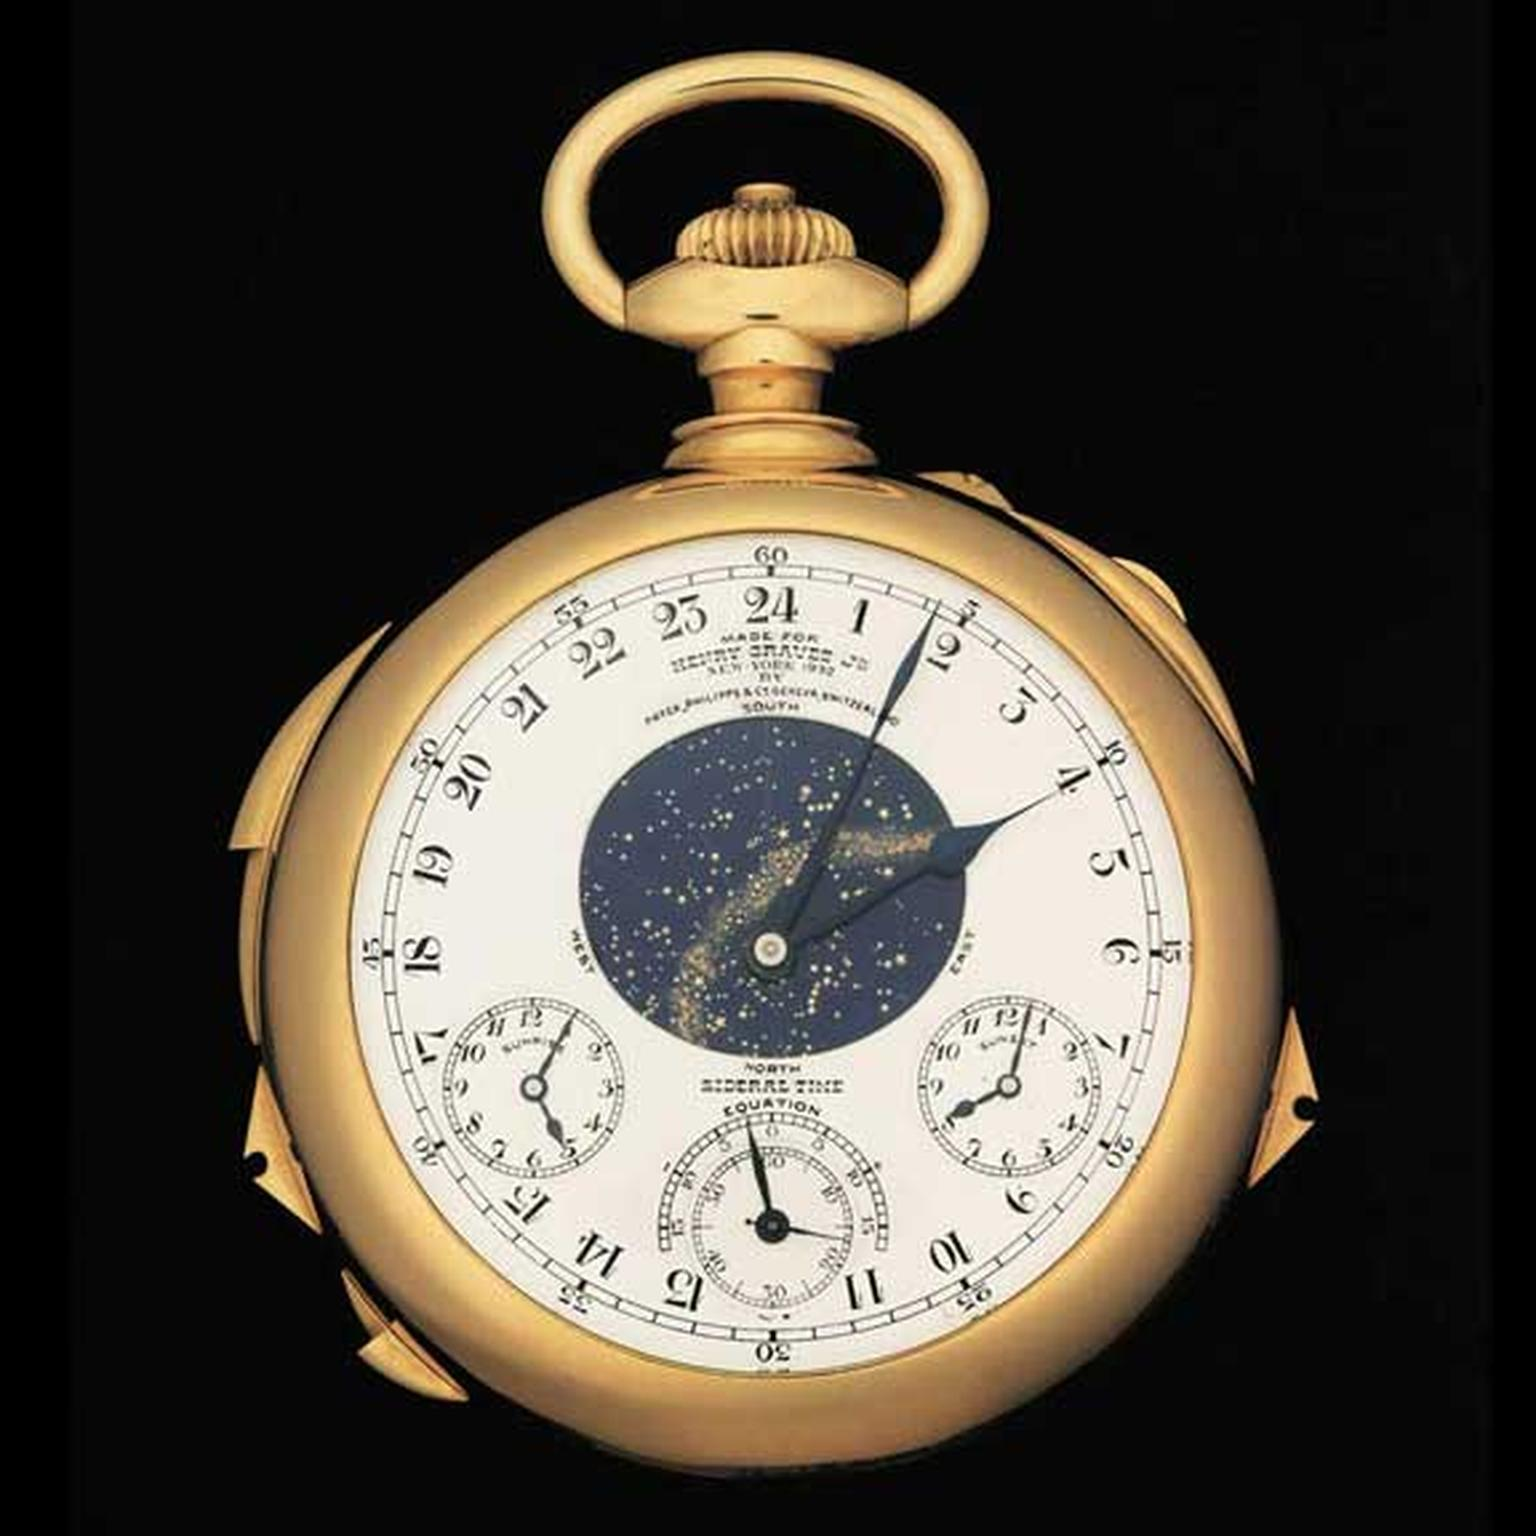 Henry Graves Supercomplication